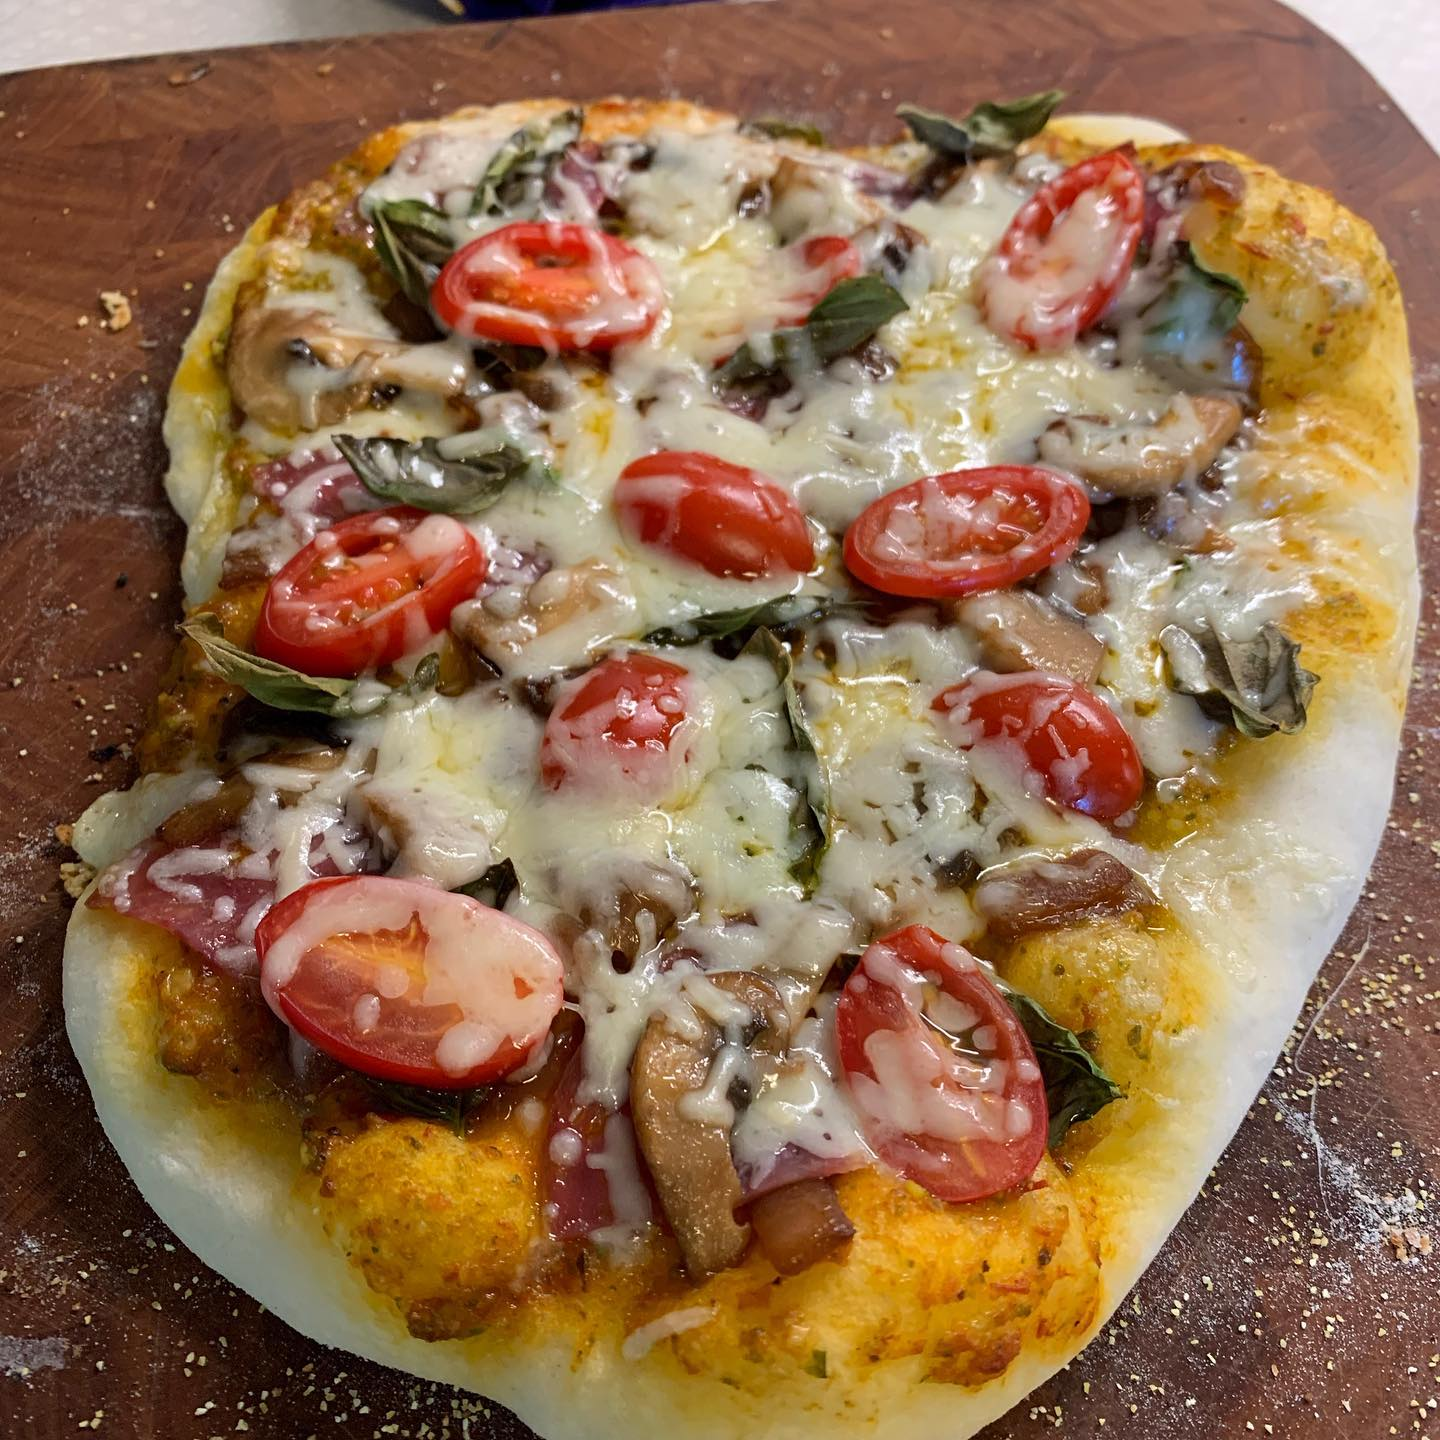 A couple of the pizzas that I made tonight. Rather yummy.